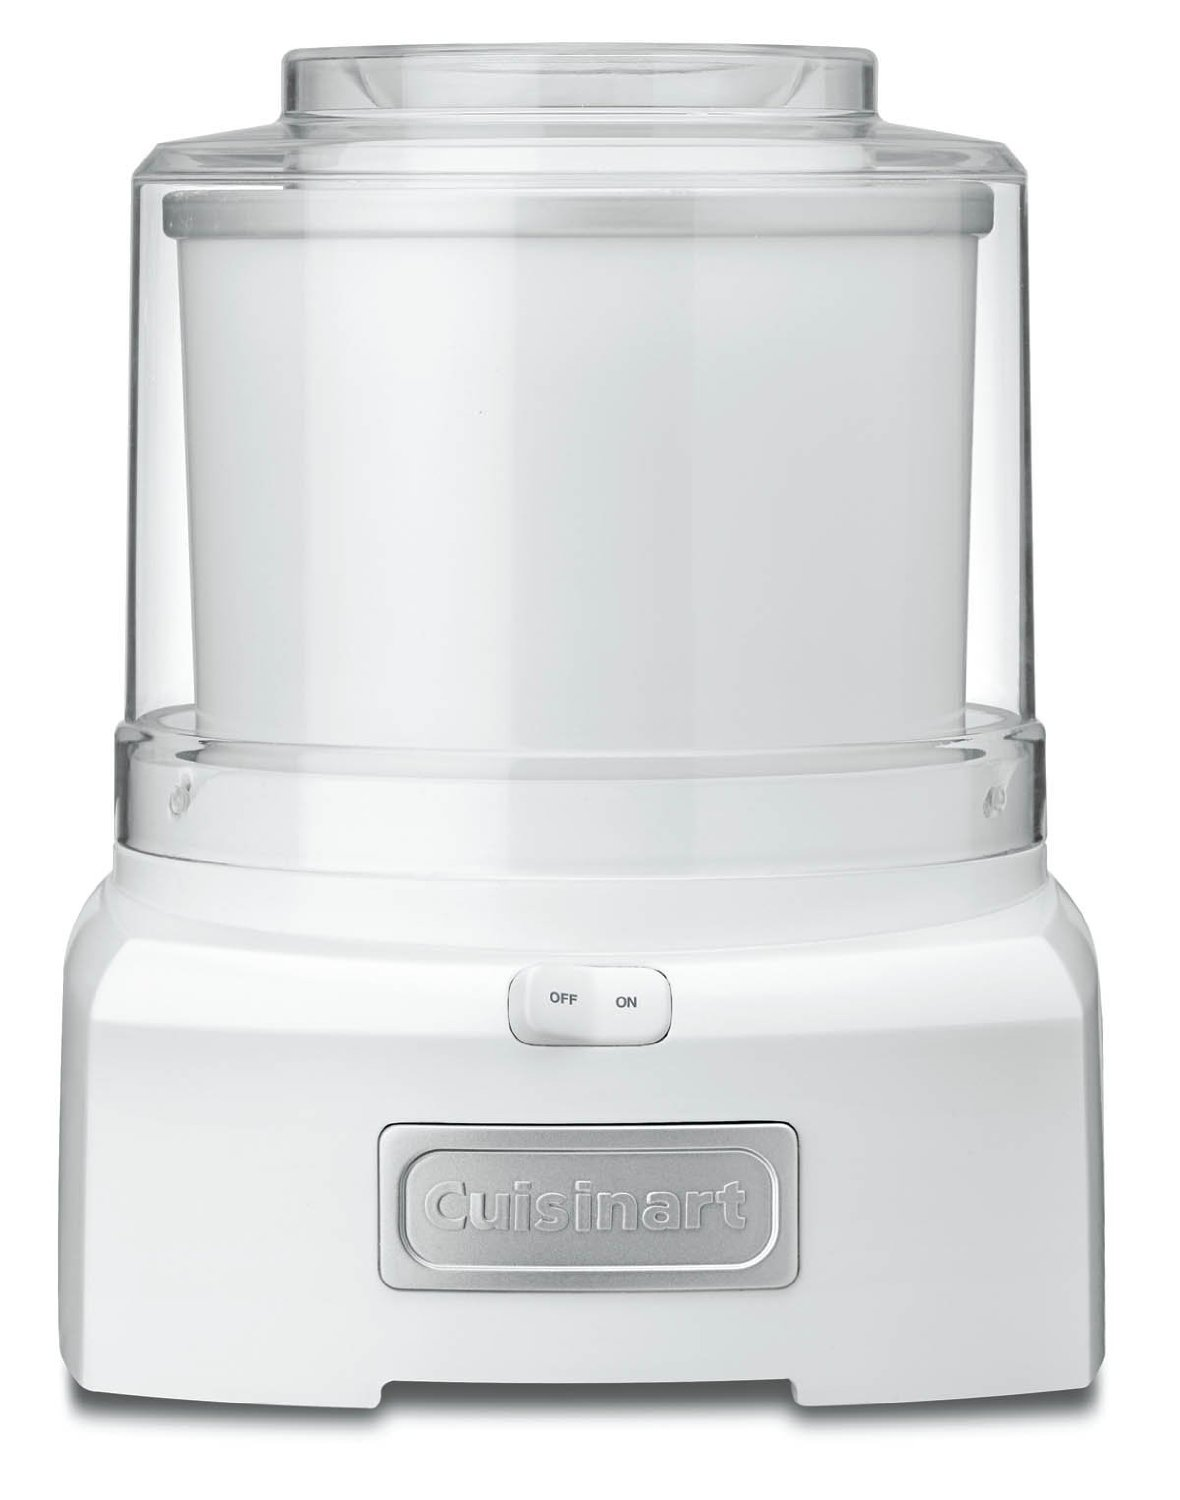 The Cuisinart ICE-21 Frozen Yogurt Maker Review